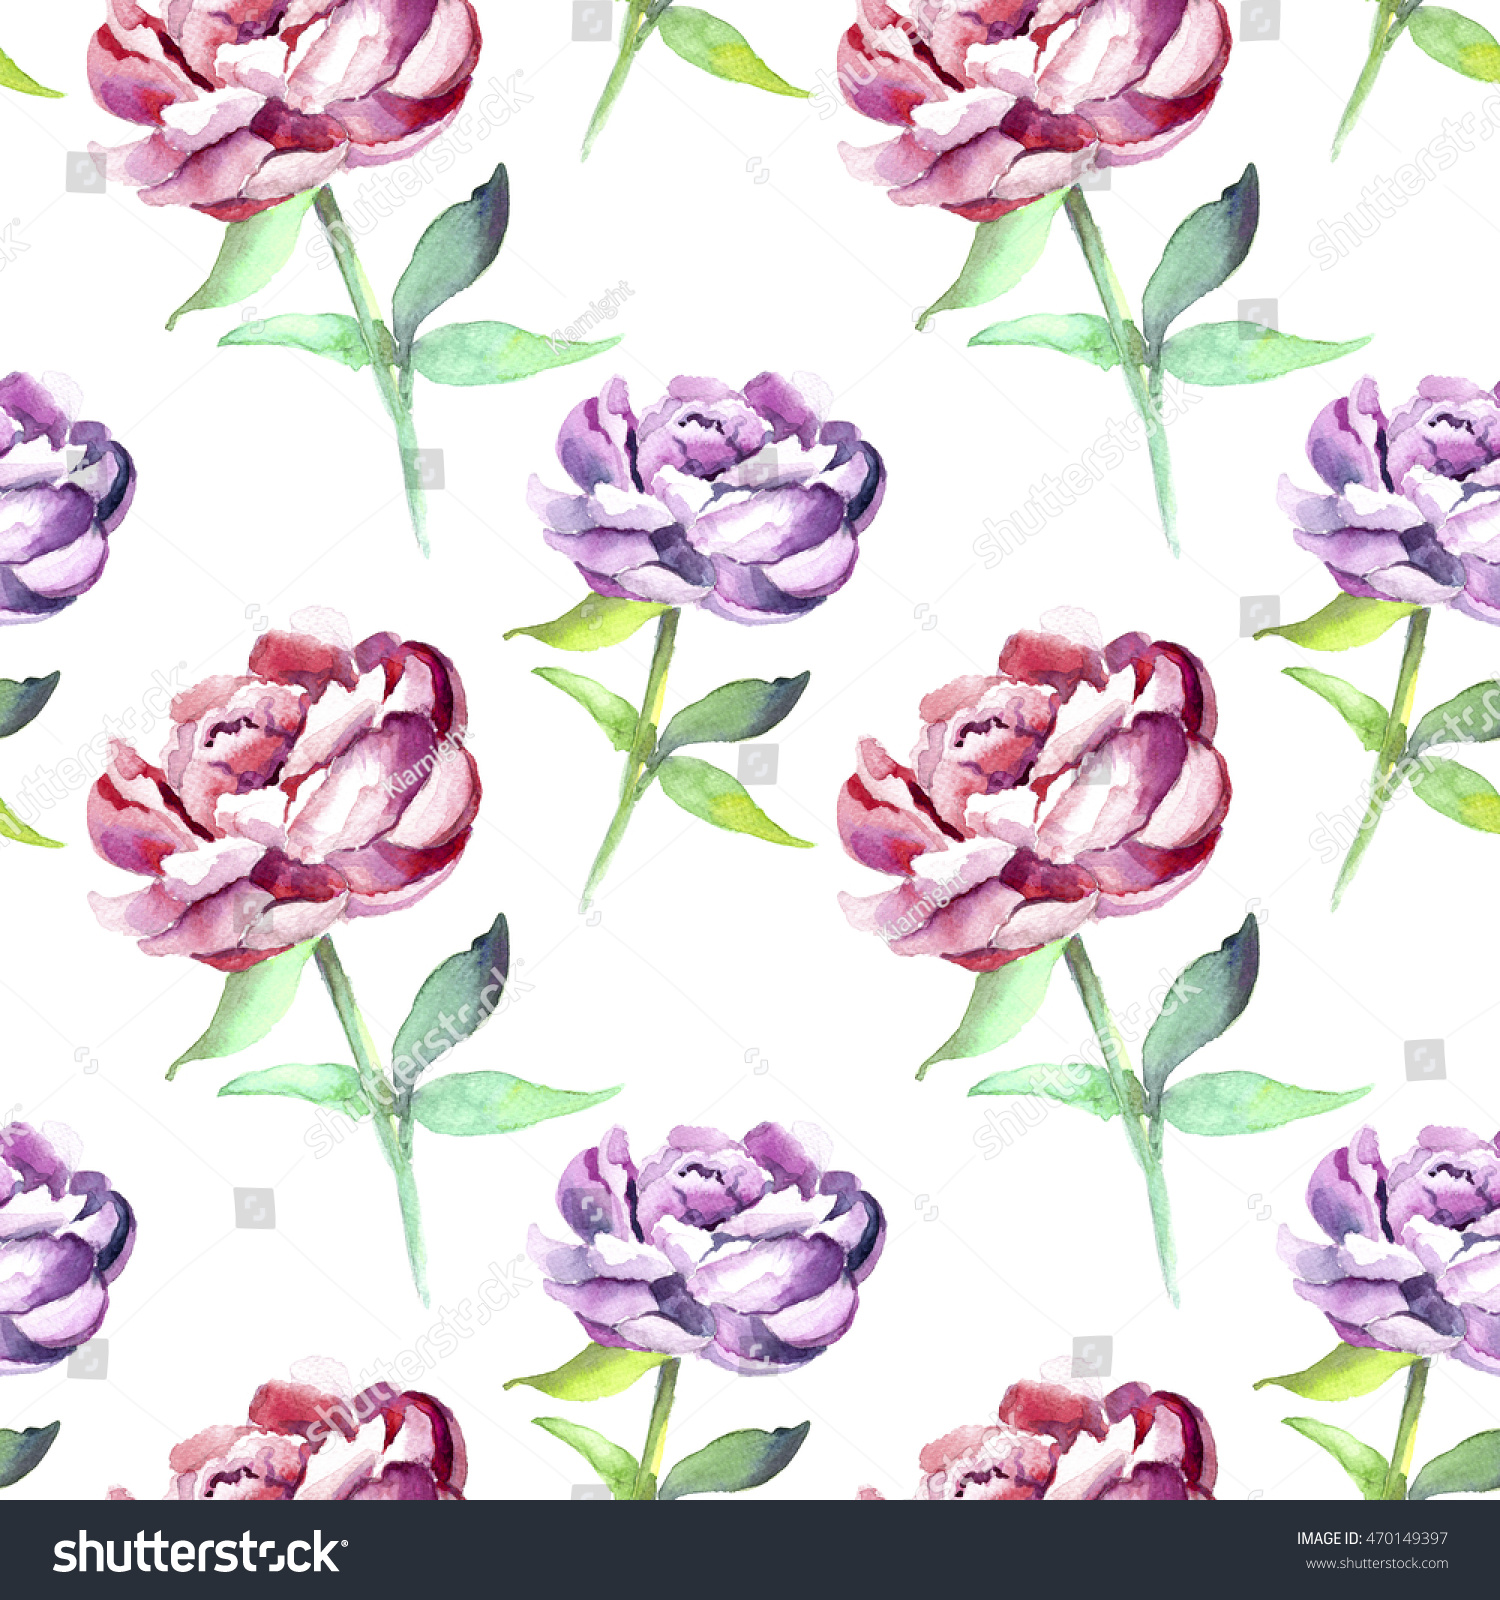 Seamless Pattern With Hand Drawn Watercolor Ice Cream: Hand Drawn Seamless Watercolor Floral Pattern Stock